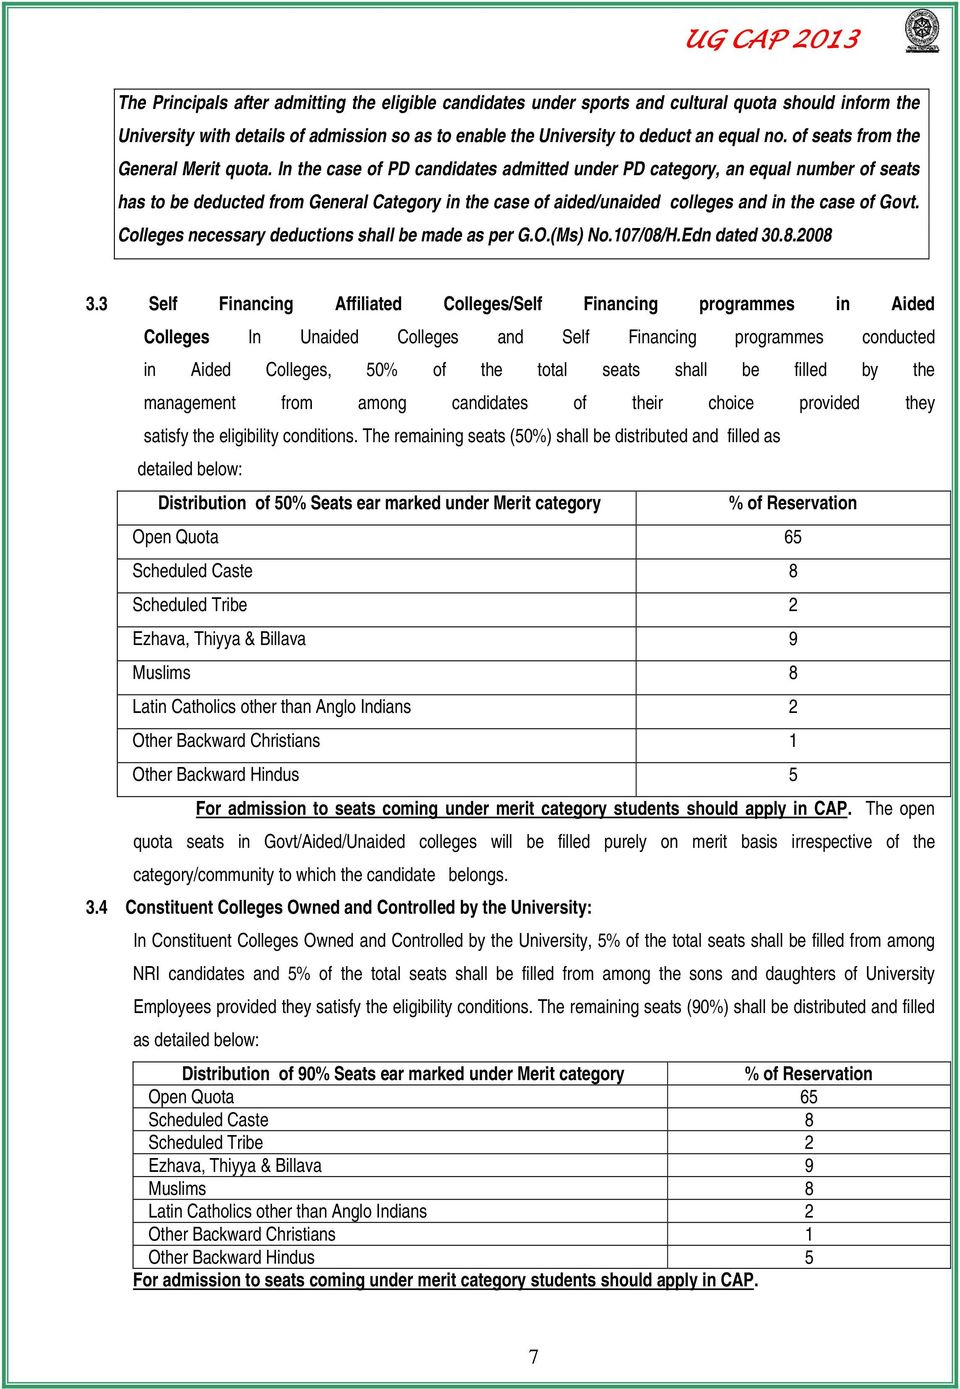 In the case of PD candidates admitted under PD category, an equal number of seats has to be deducted from General Category in the case of aided/unaided colleges and in the case of Govt.